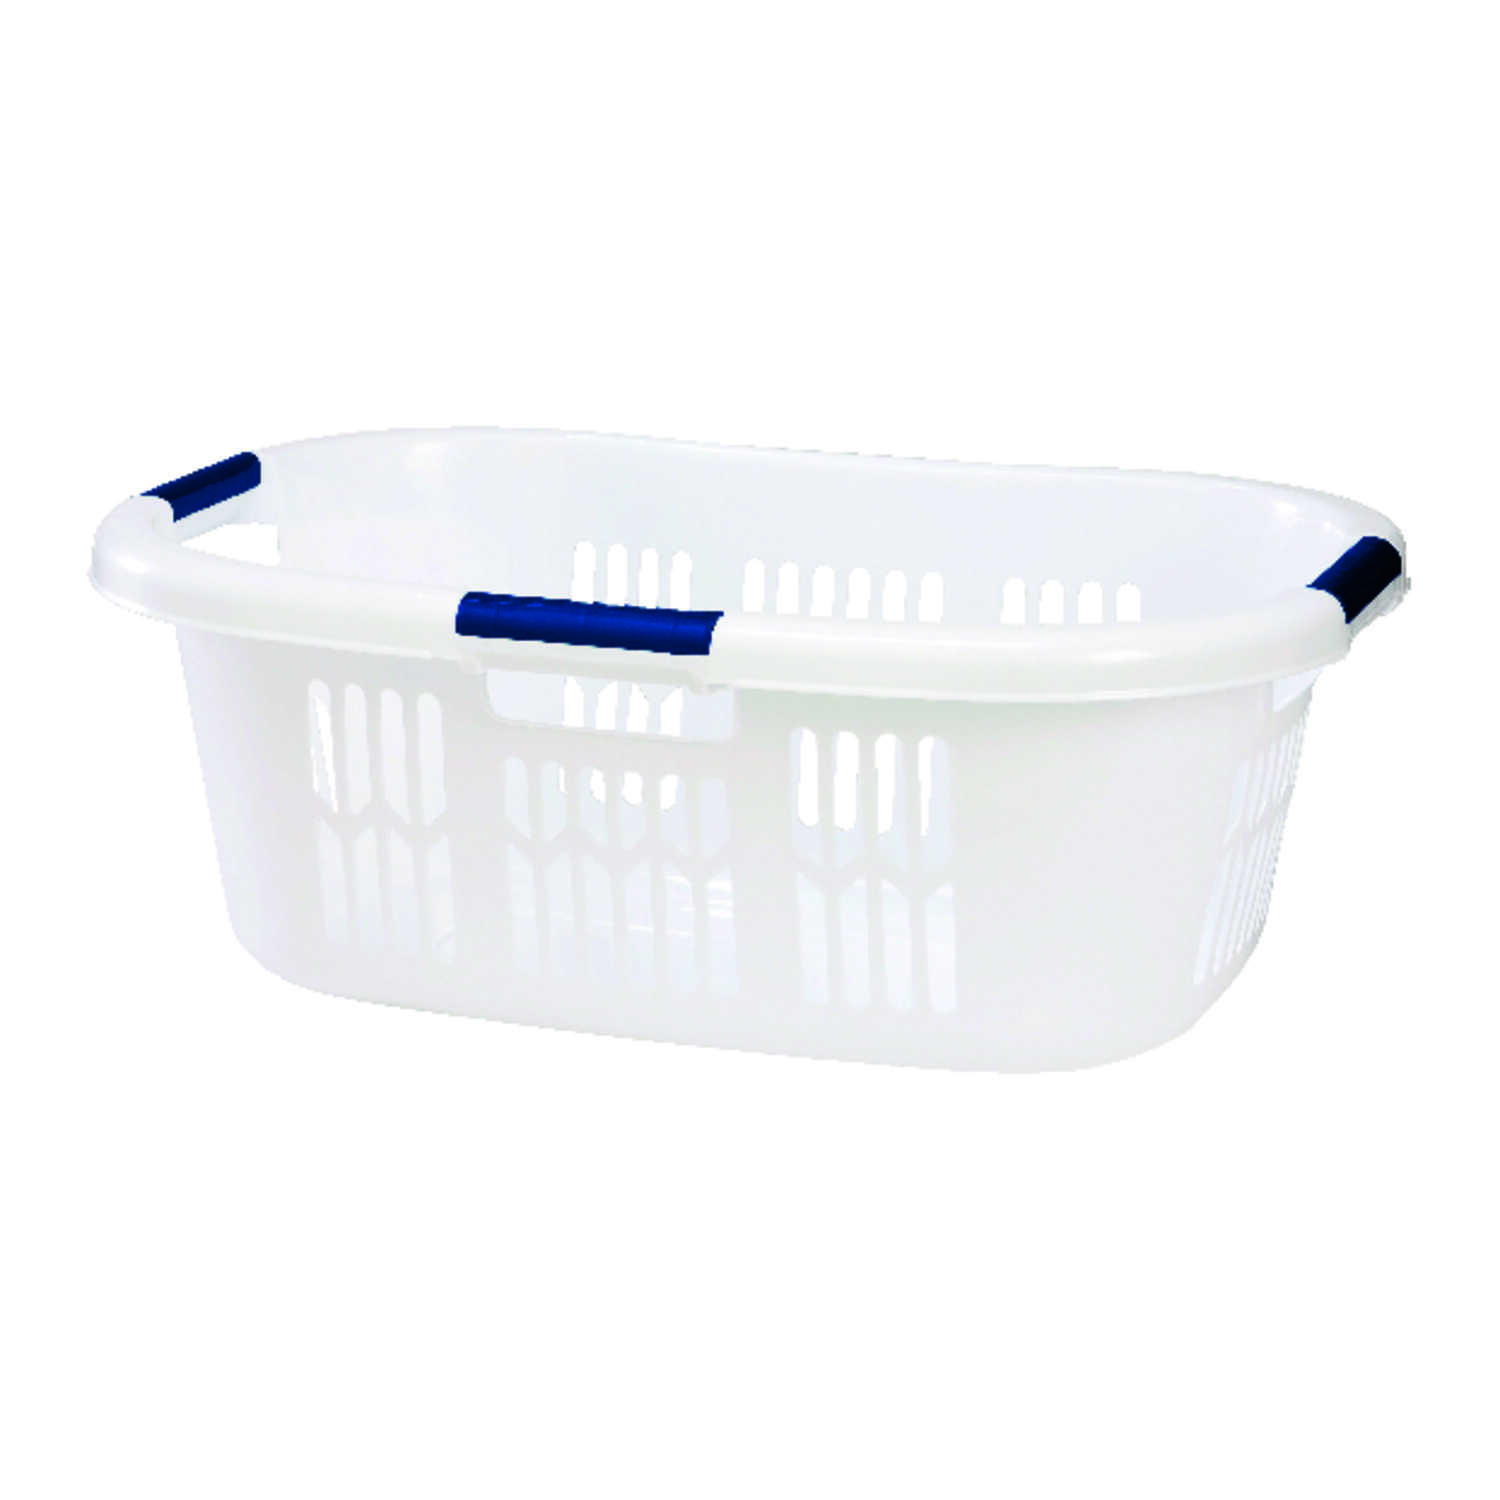 Rubbermaid  White  Polyethylene  Laundry Basket